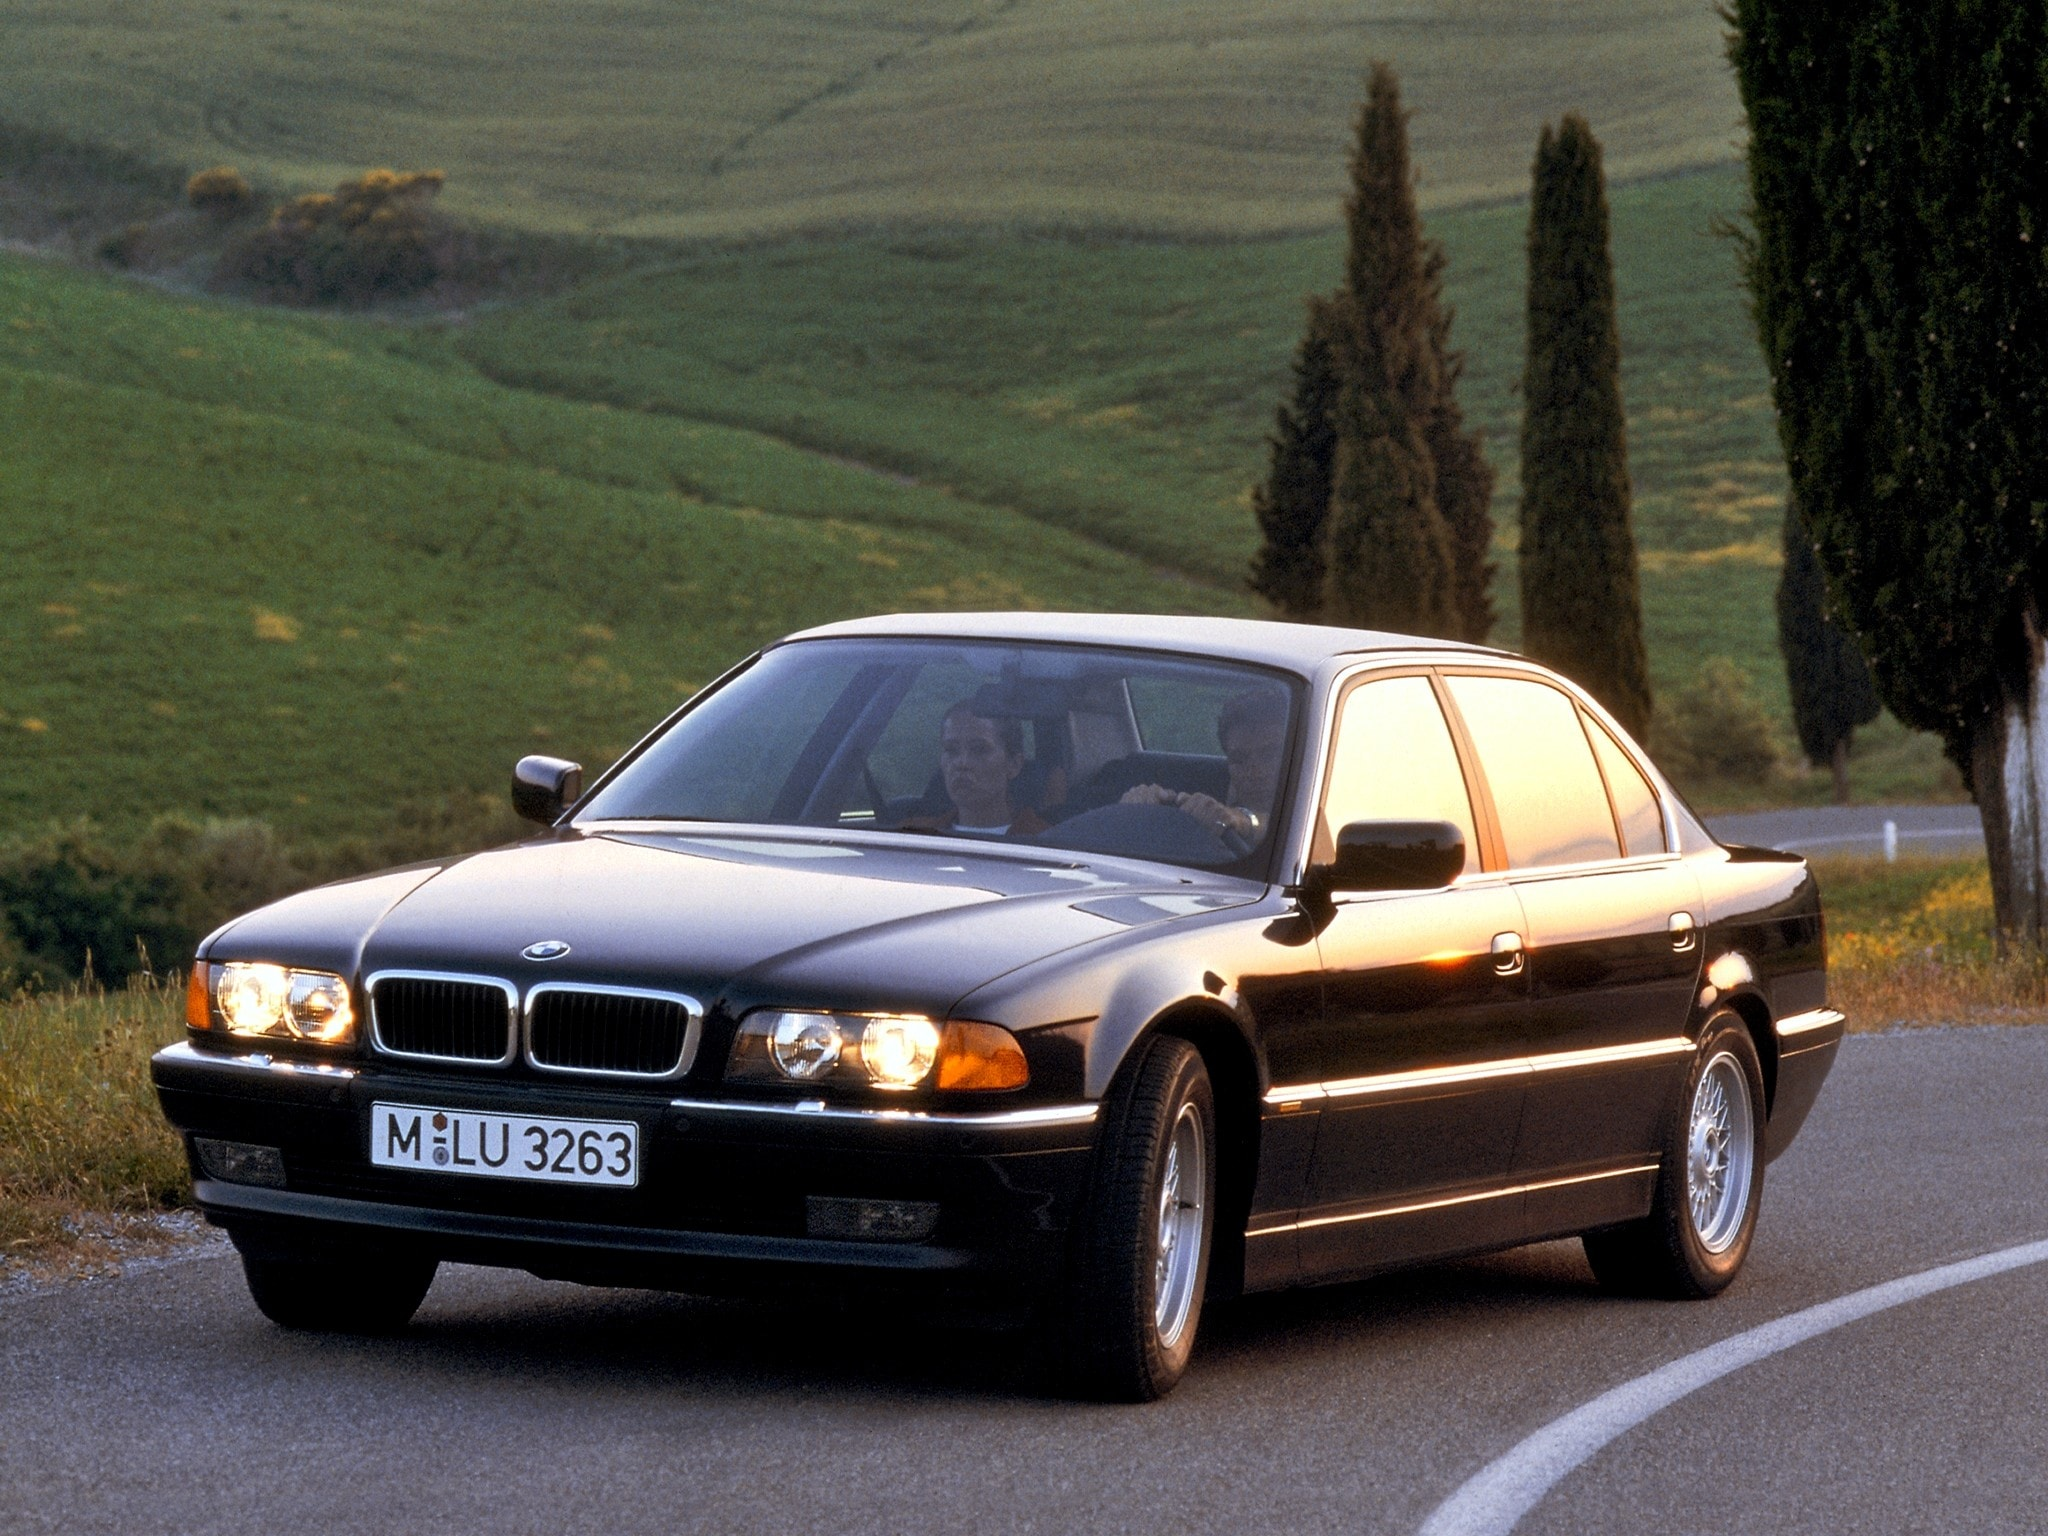 1995 BMW 7 Series Full hd wallpapers